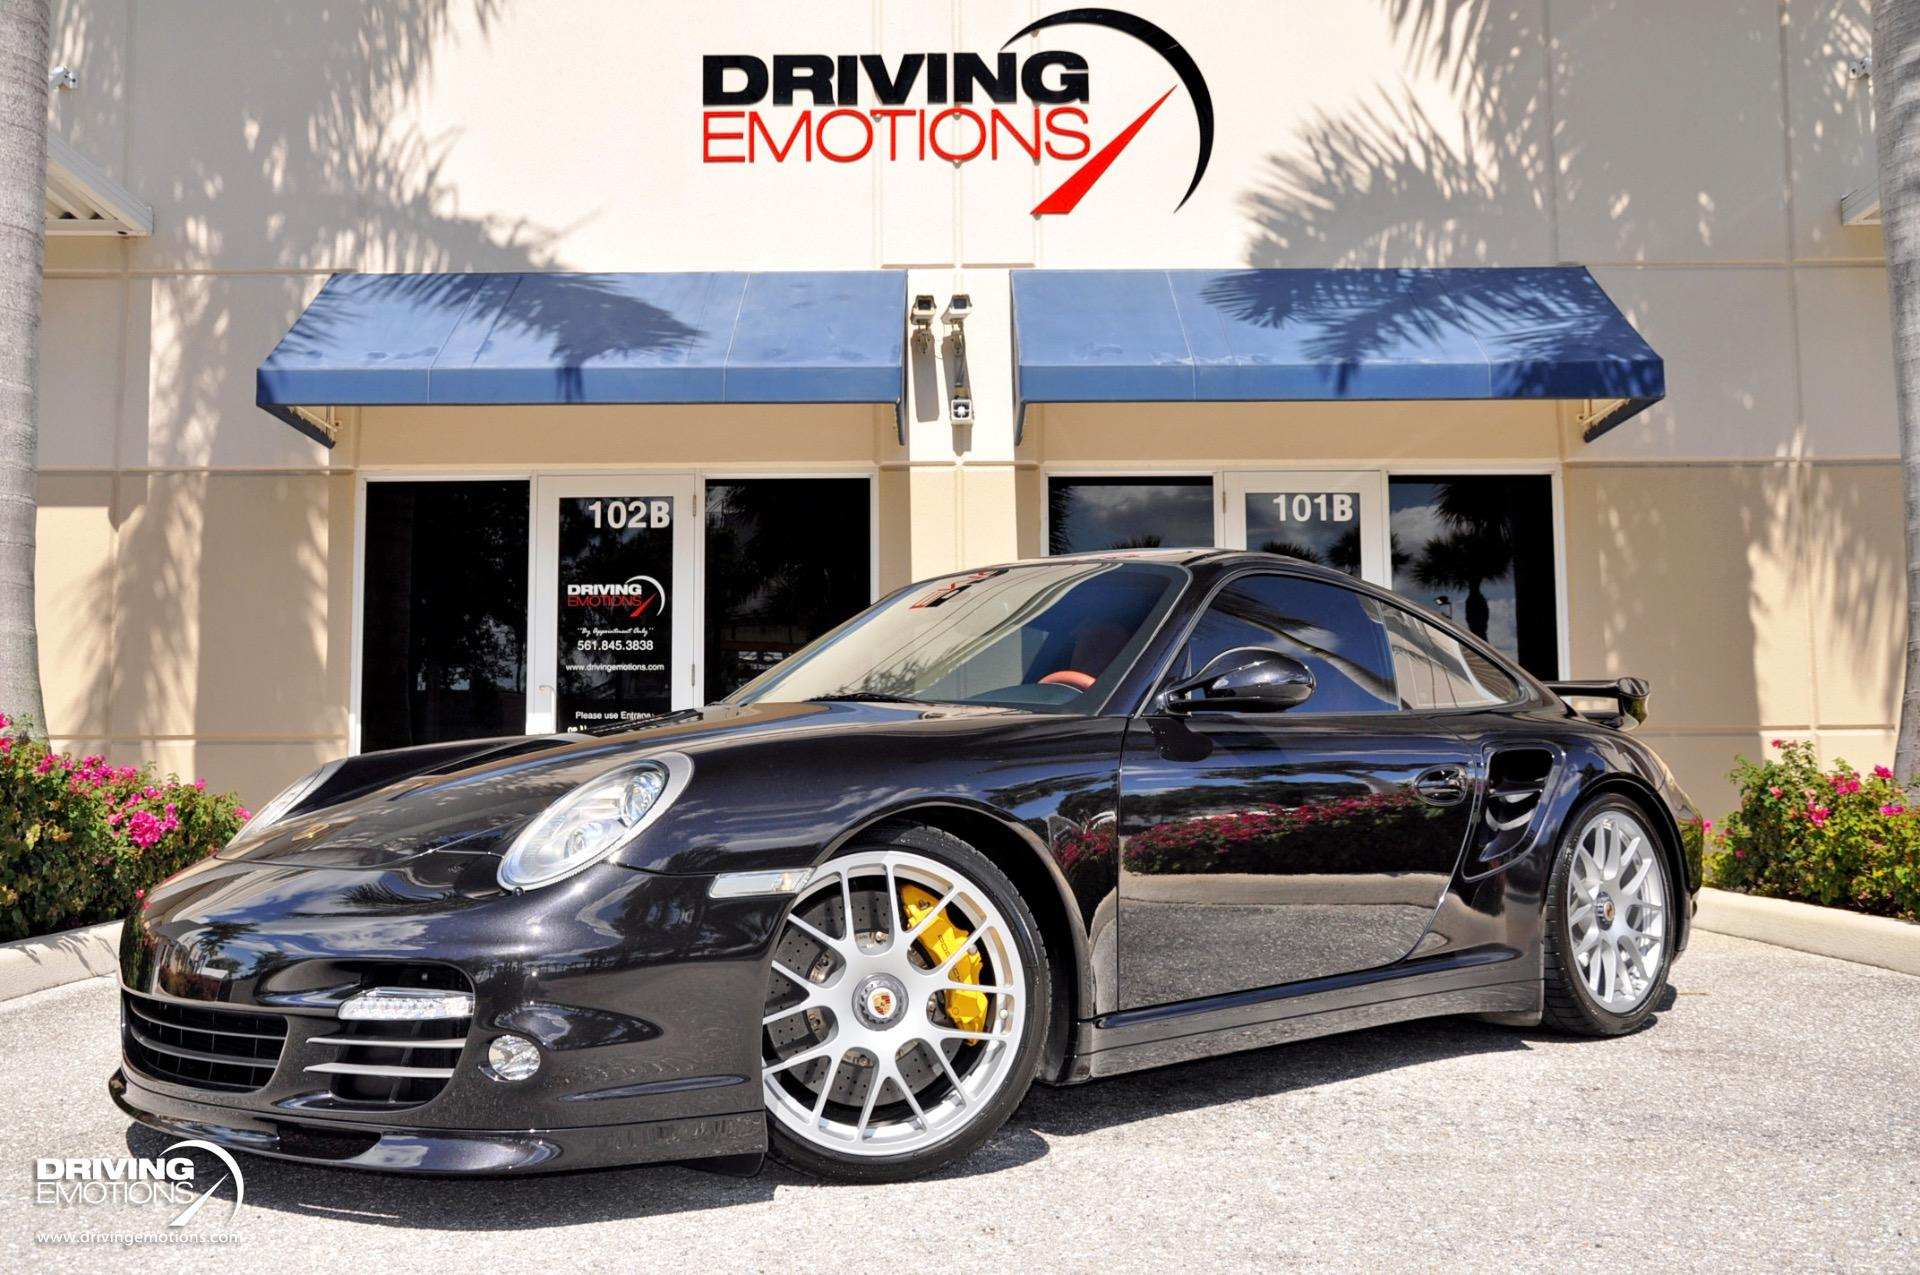 Used 2011 Porsche 911 Turbo S Turbo S Coupe | Lake Park, FL